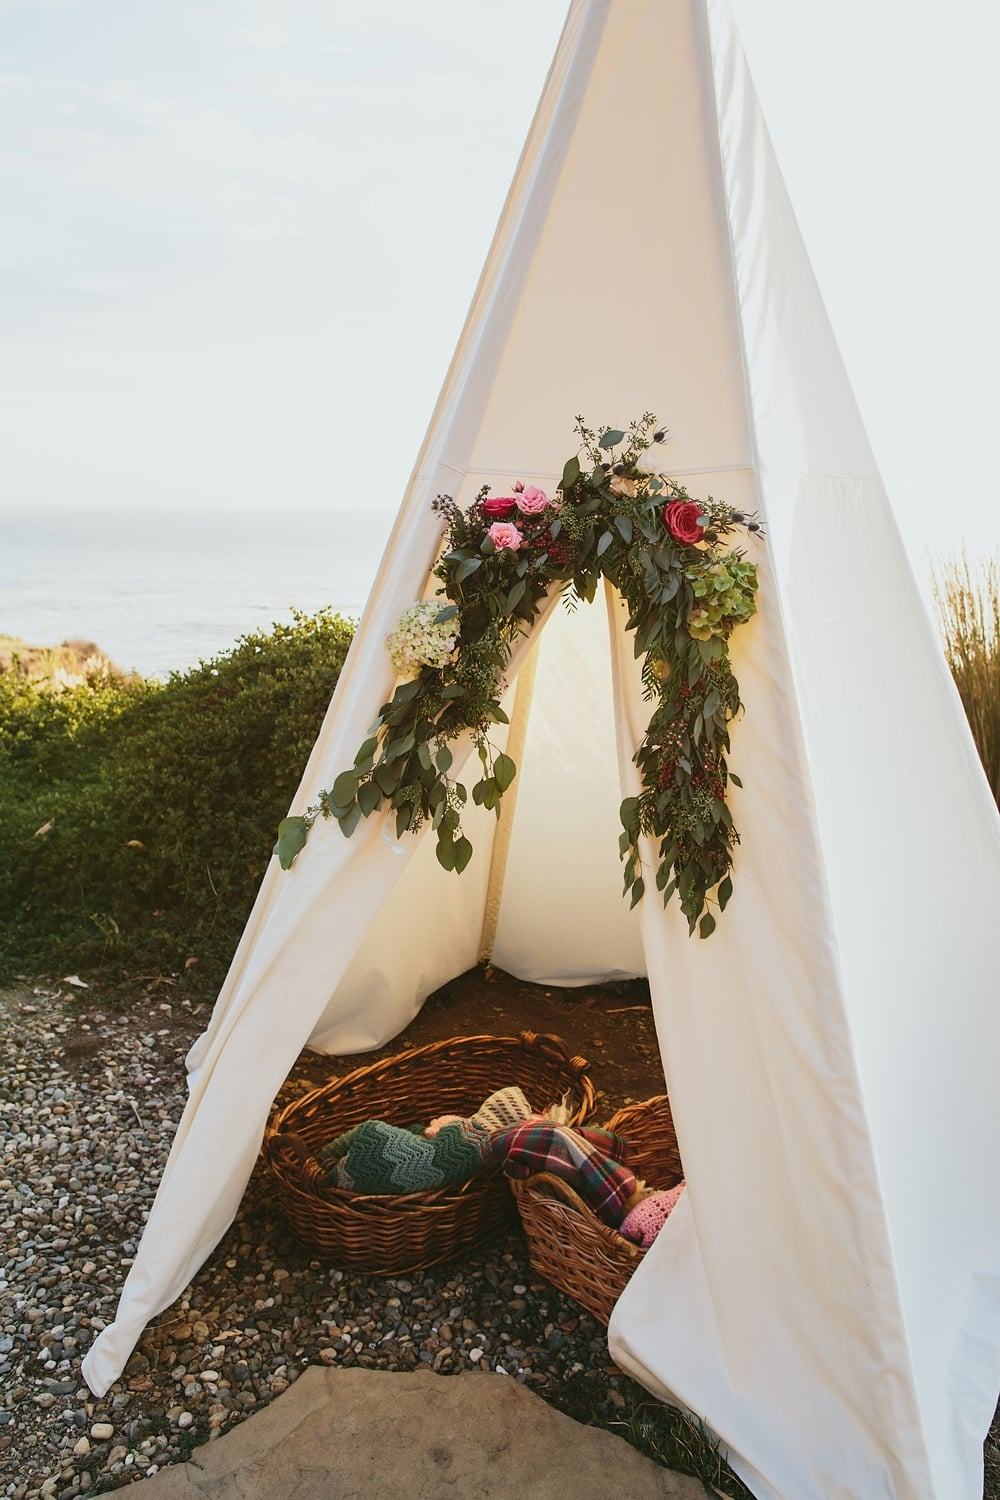 Decorative Teepee and Flower Garland by Kate Healey of Big Sur Flowers